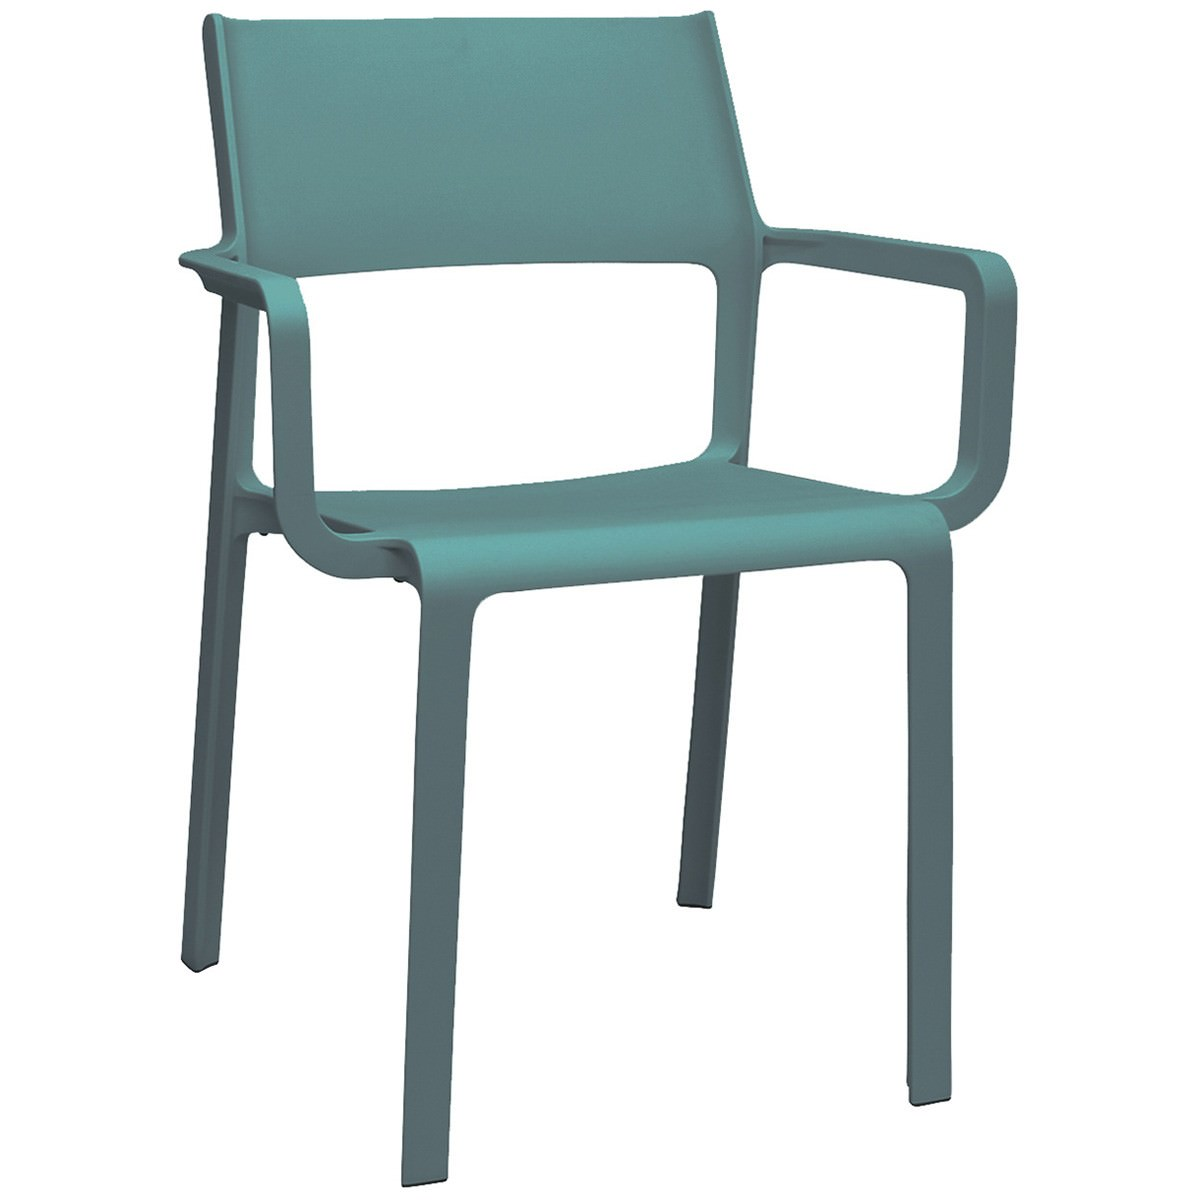 Trill Italian Made Commercial Grade Indoor / Outdoor Dining Armchair, Teal